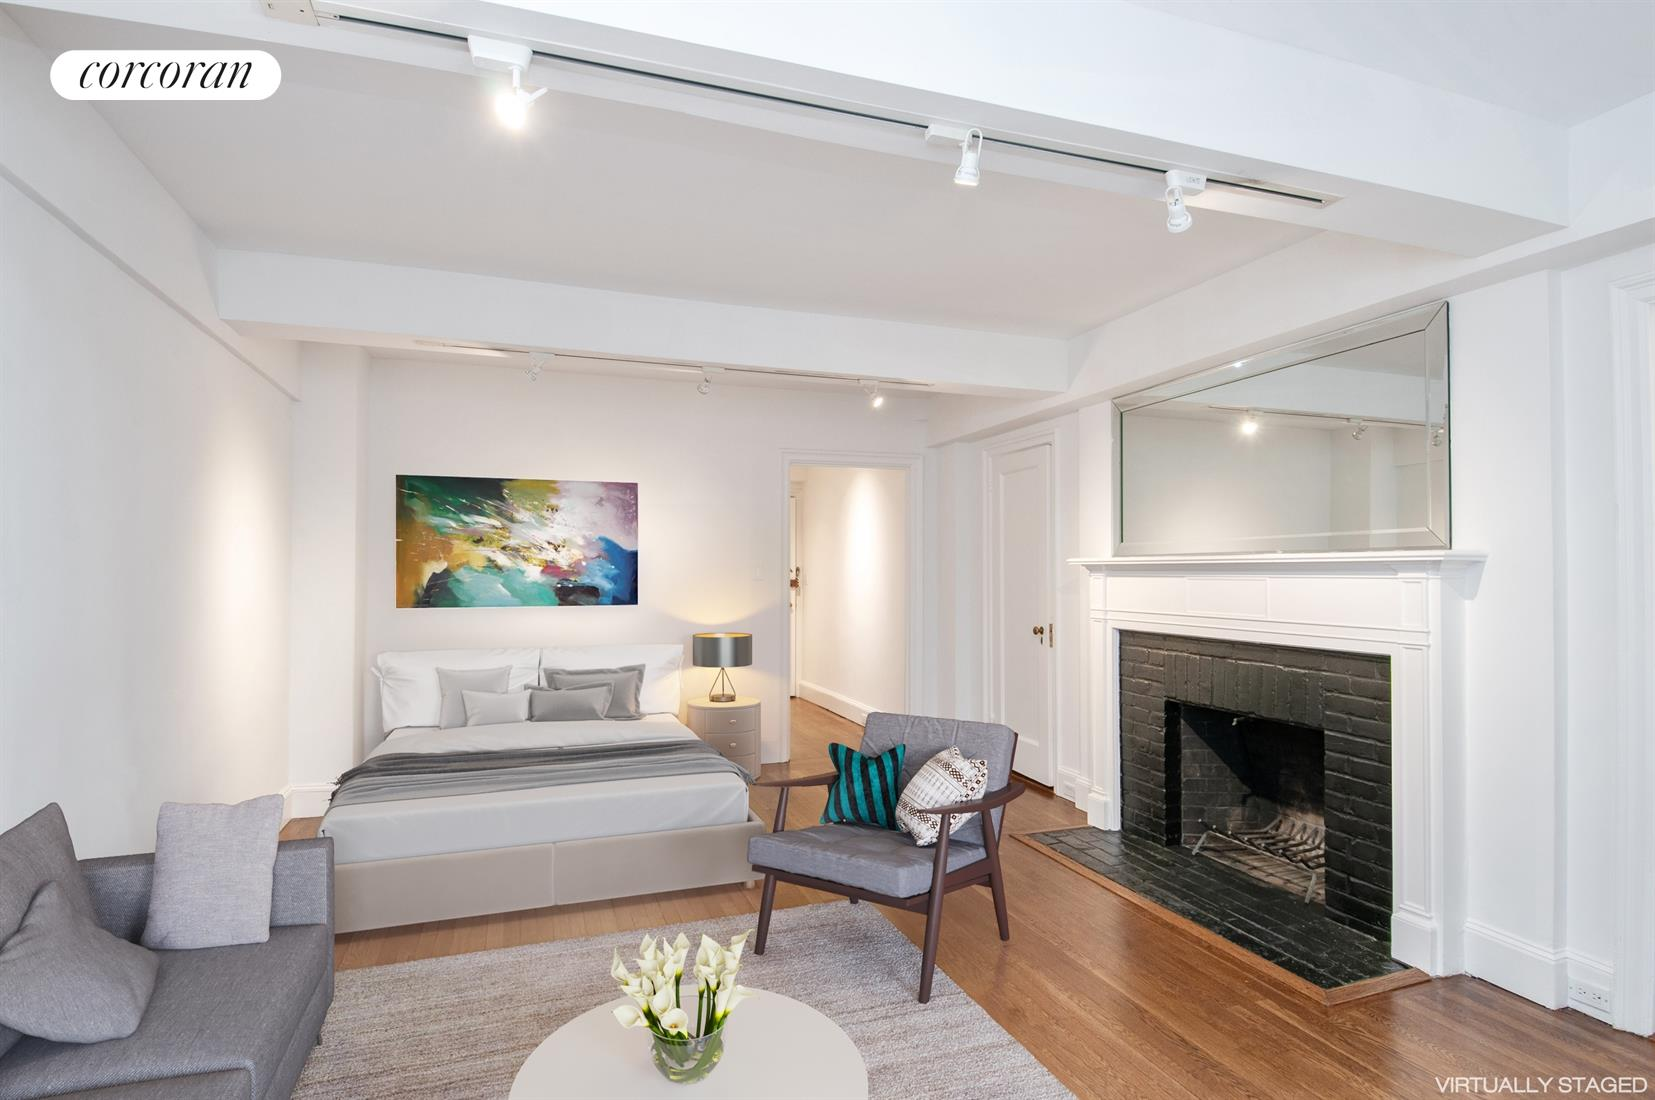 434 East 52nd Street, 8A, Location 3